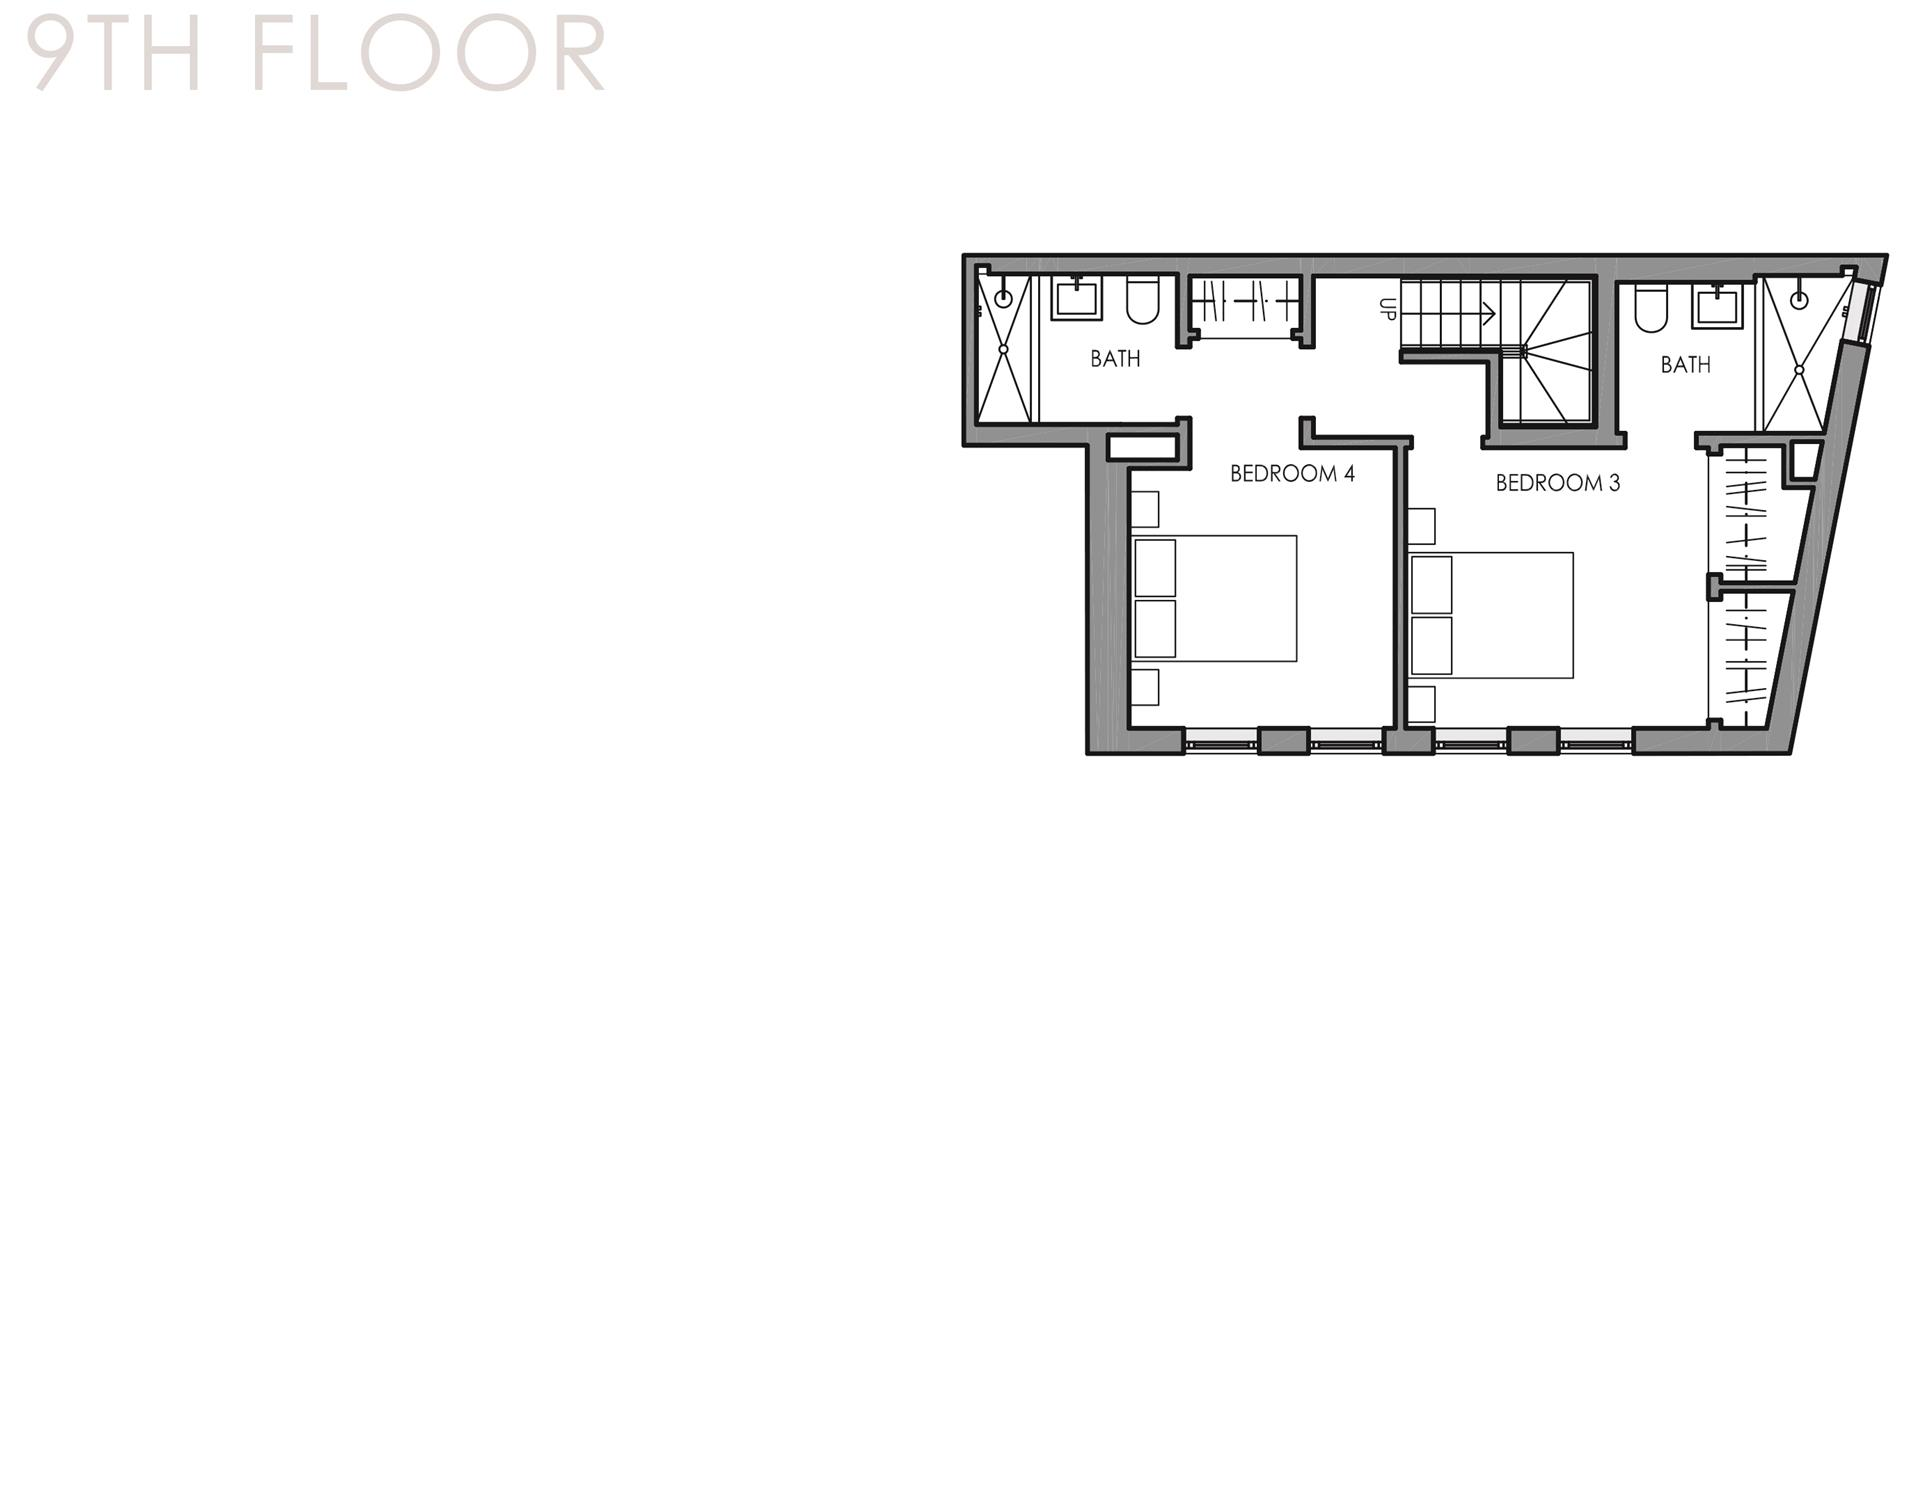 Floor plan of 32 East 1st St, PHC - East Village, New York